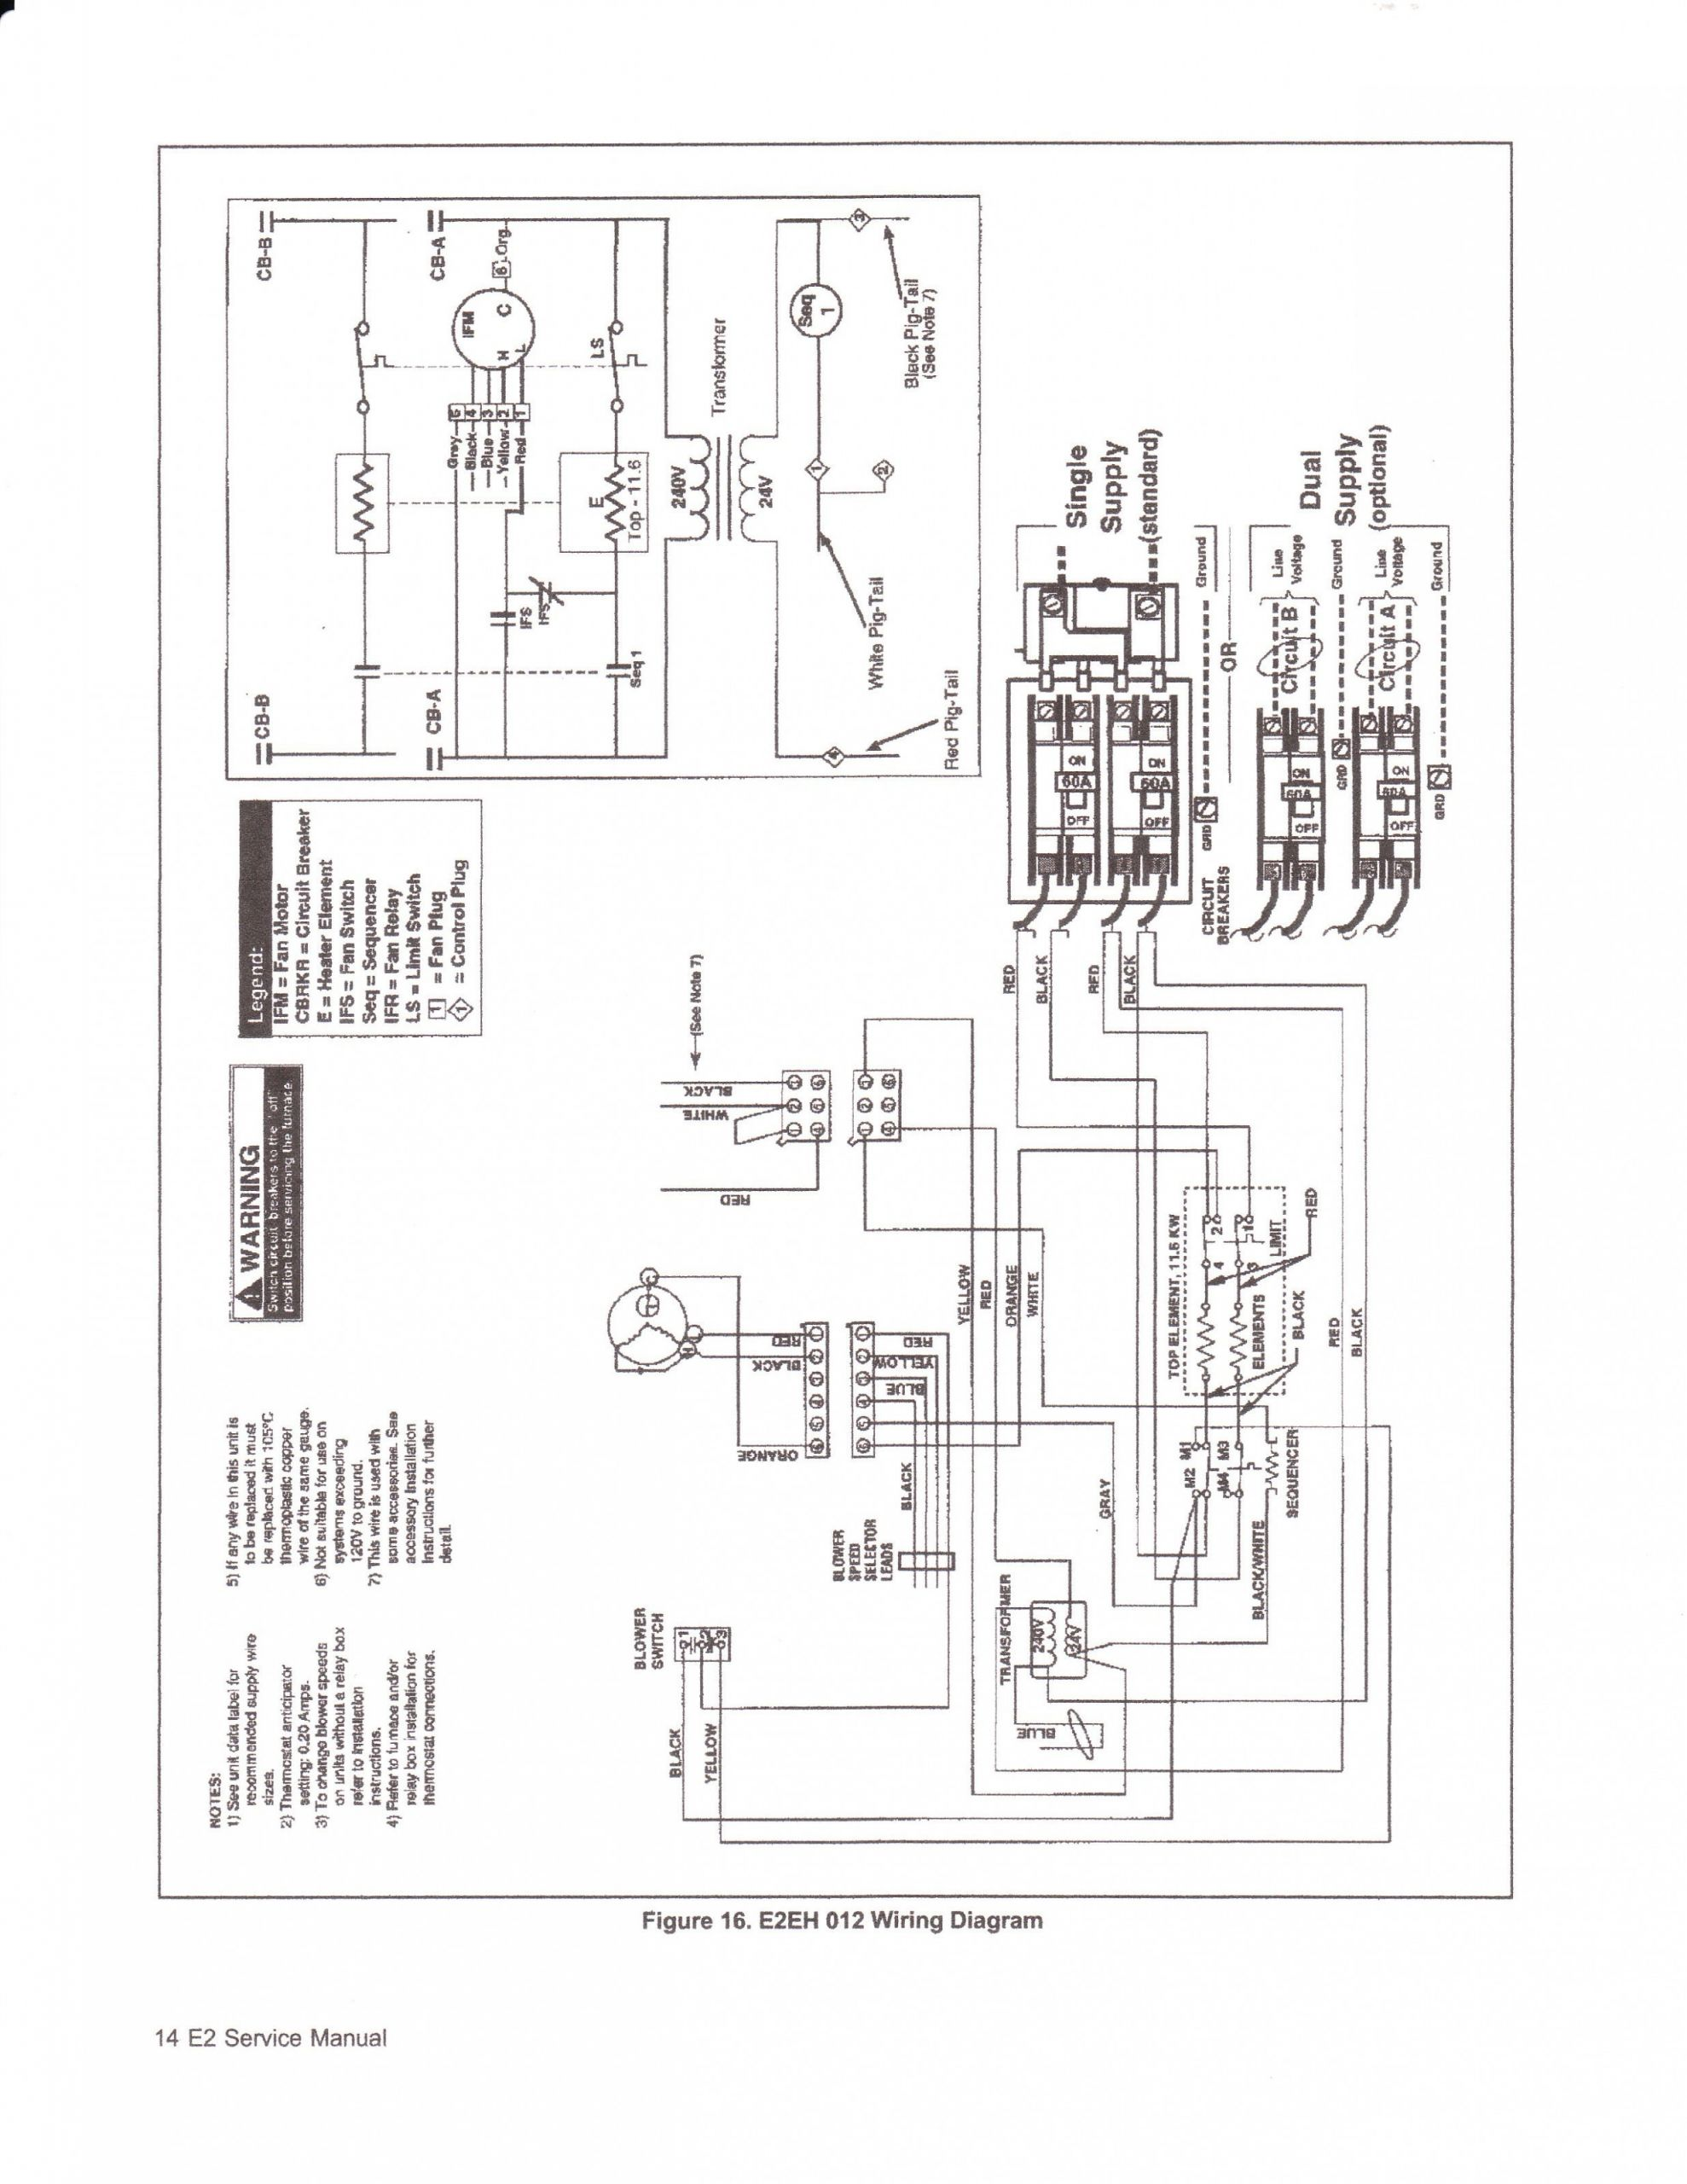 Armstrong Electric Furnace Wiring Diagram Coleman Electric Furnace Wiring Diagram Download Of Armstrong Electric Furnace Wiring Diagram